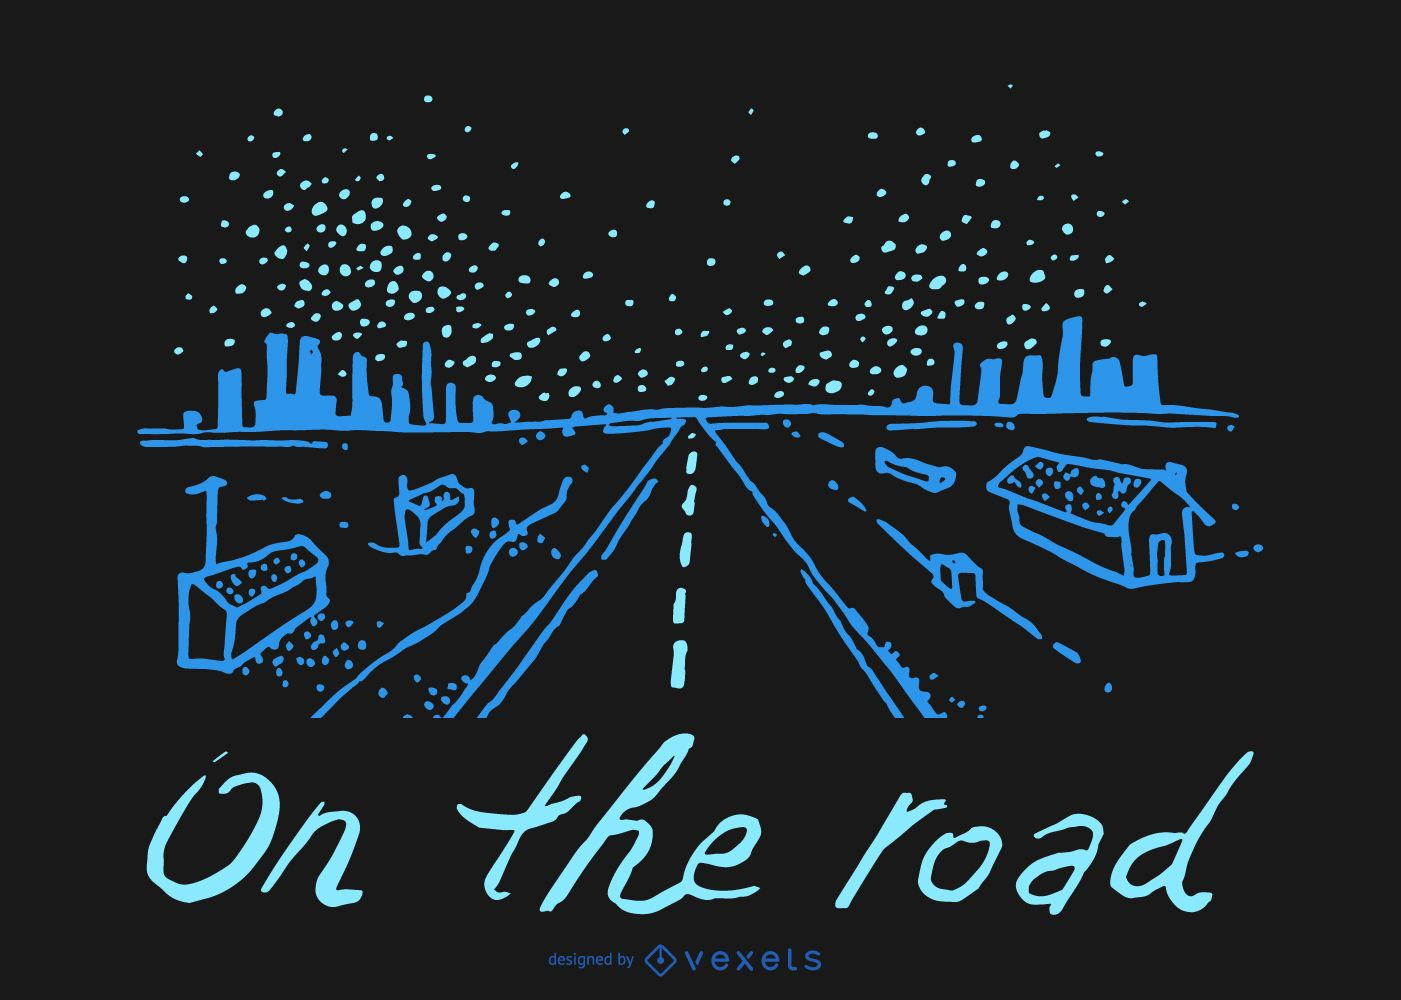 On the road doodle